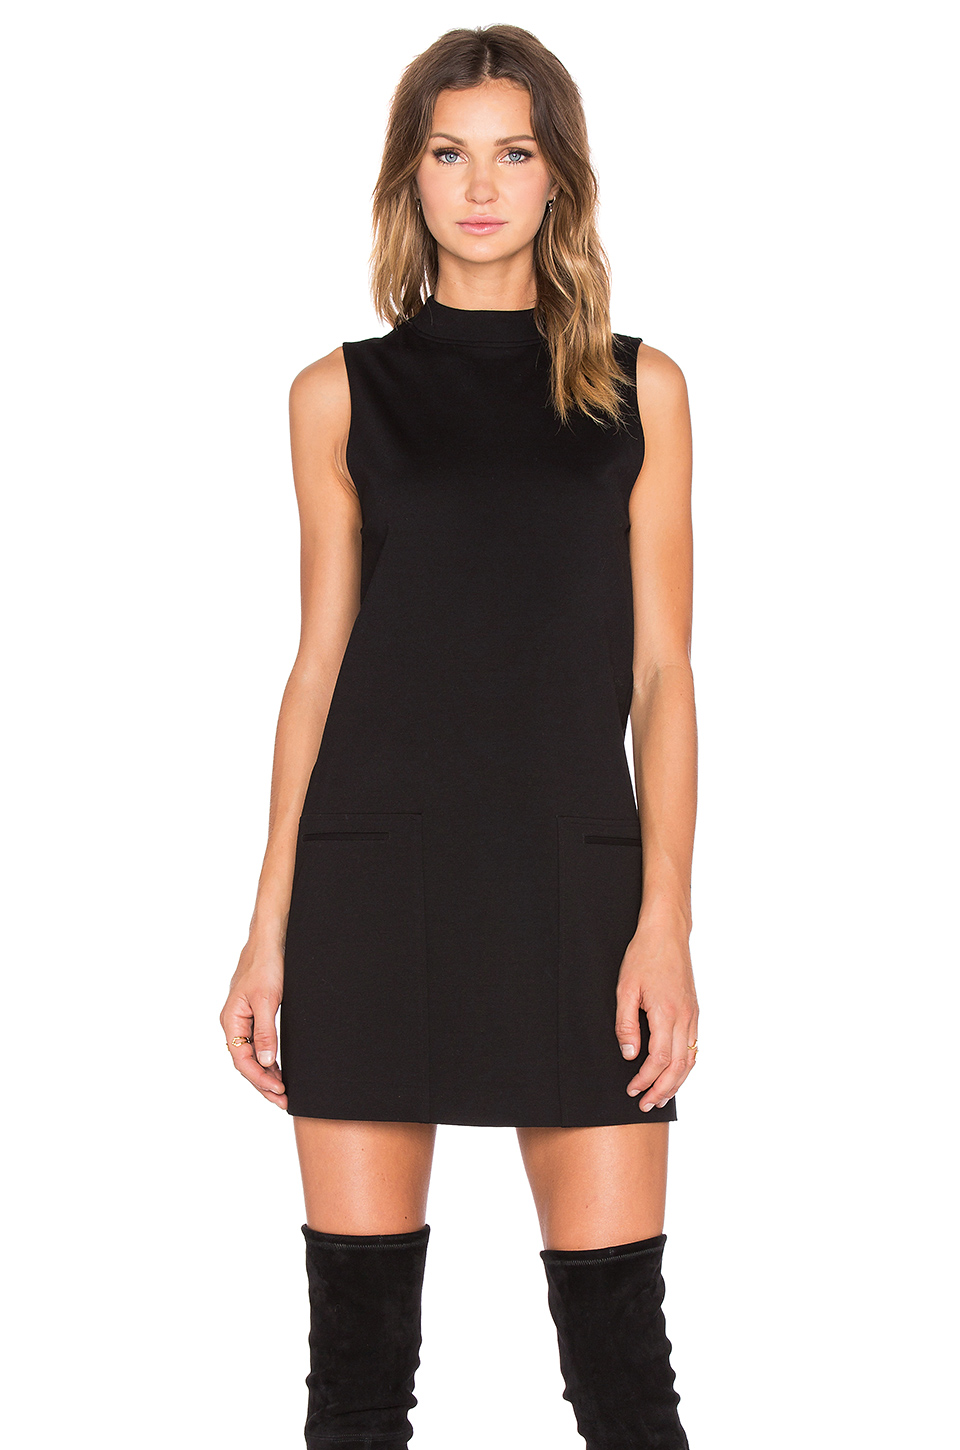 Sanctuary Mod Mini Dress, $99